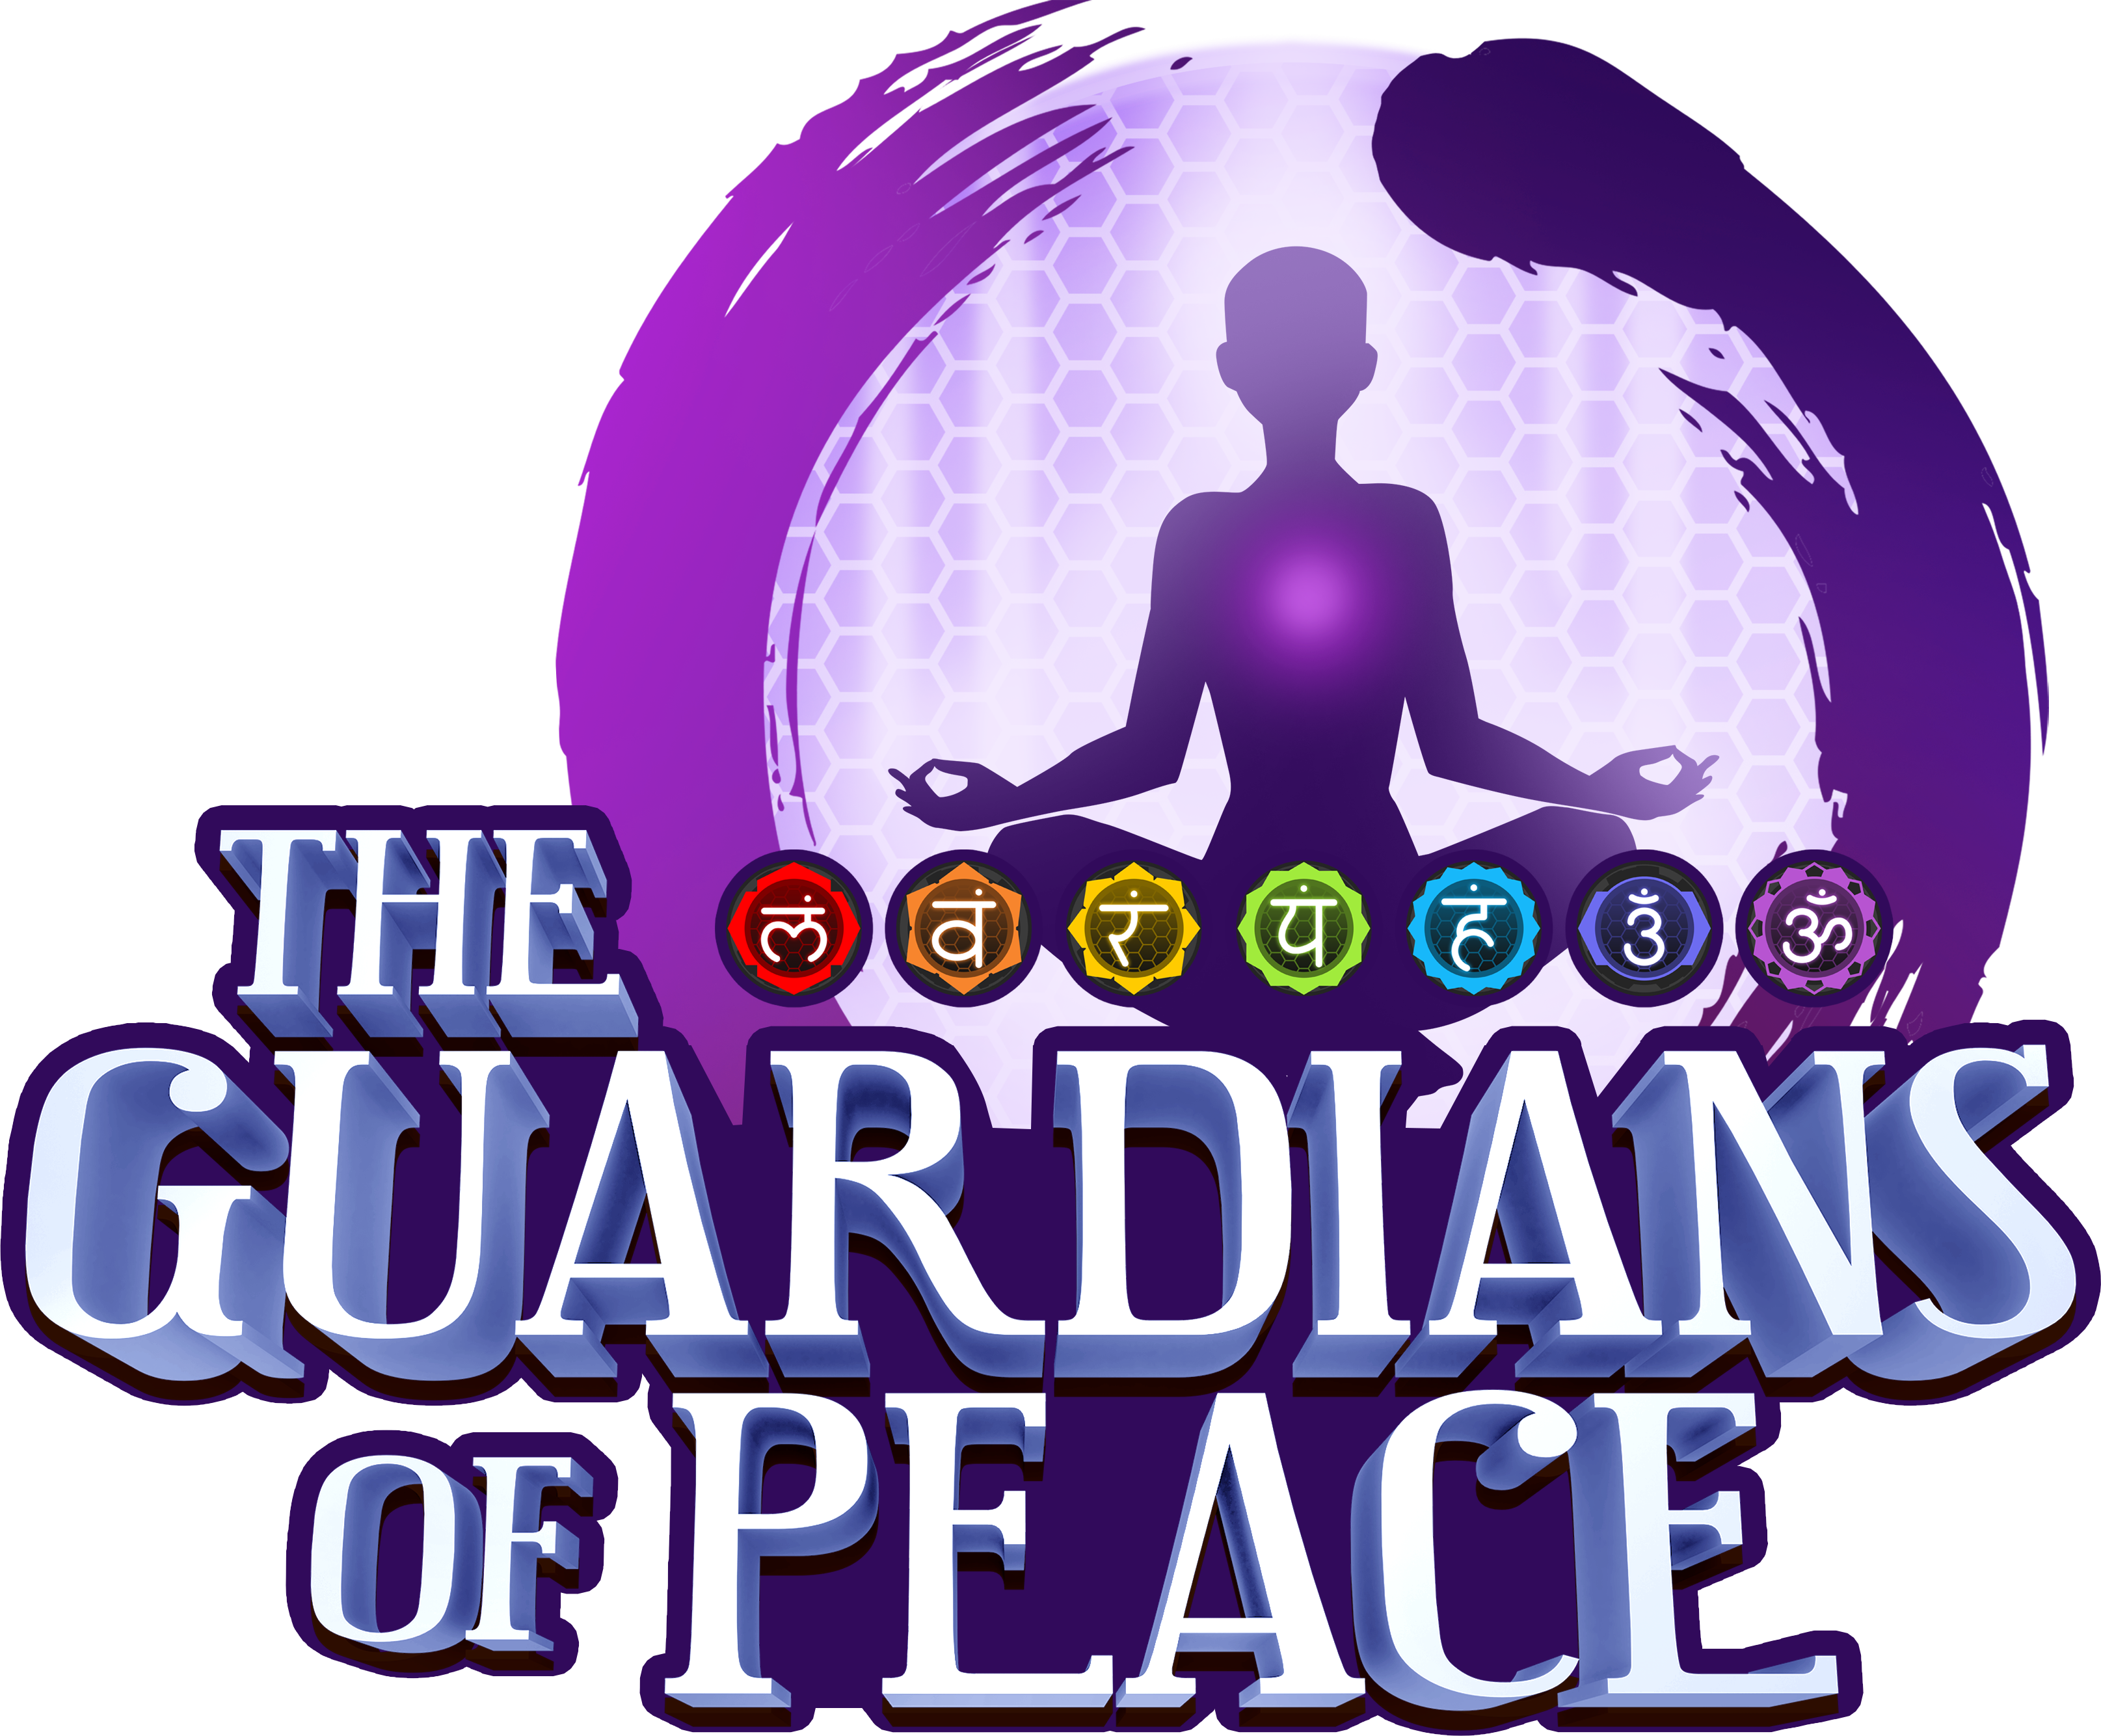 The Guardians of Peace Aims to Empower Children With Look Into Meditation, Diversity, Energy, and Inner Strength